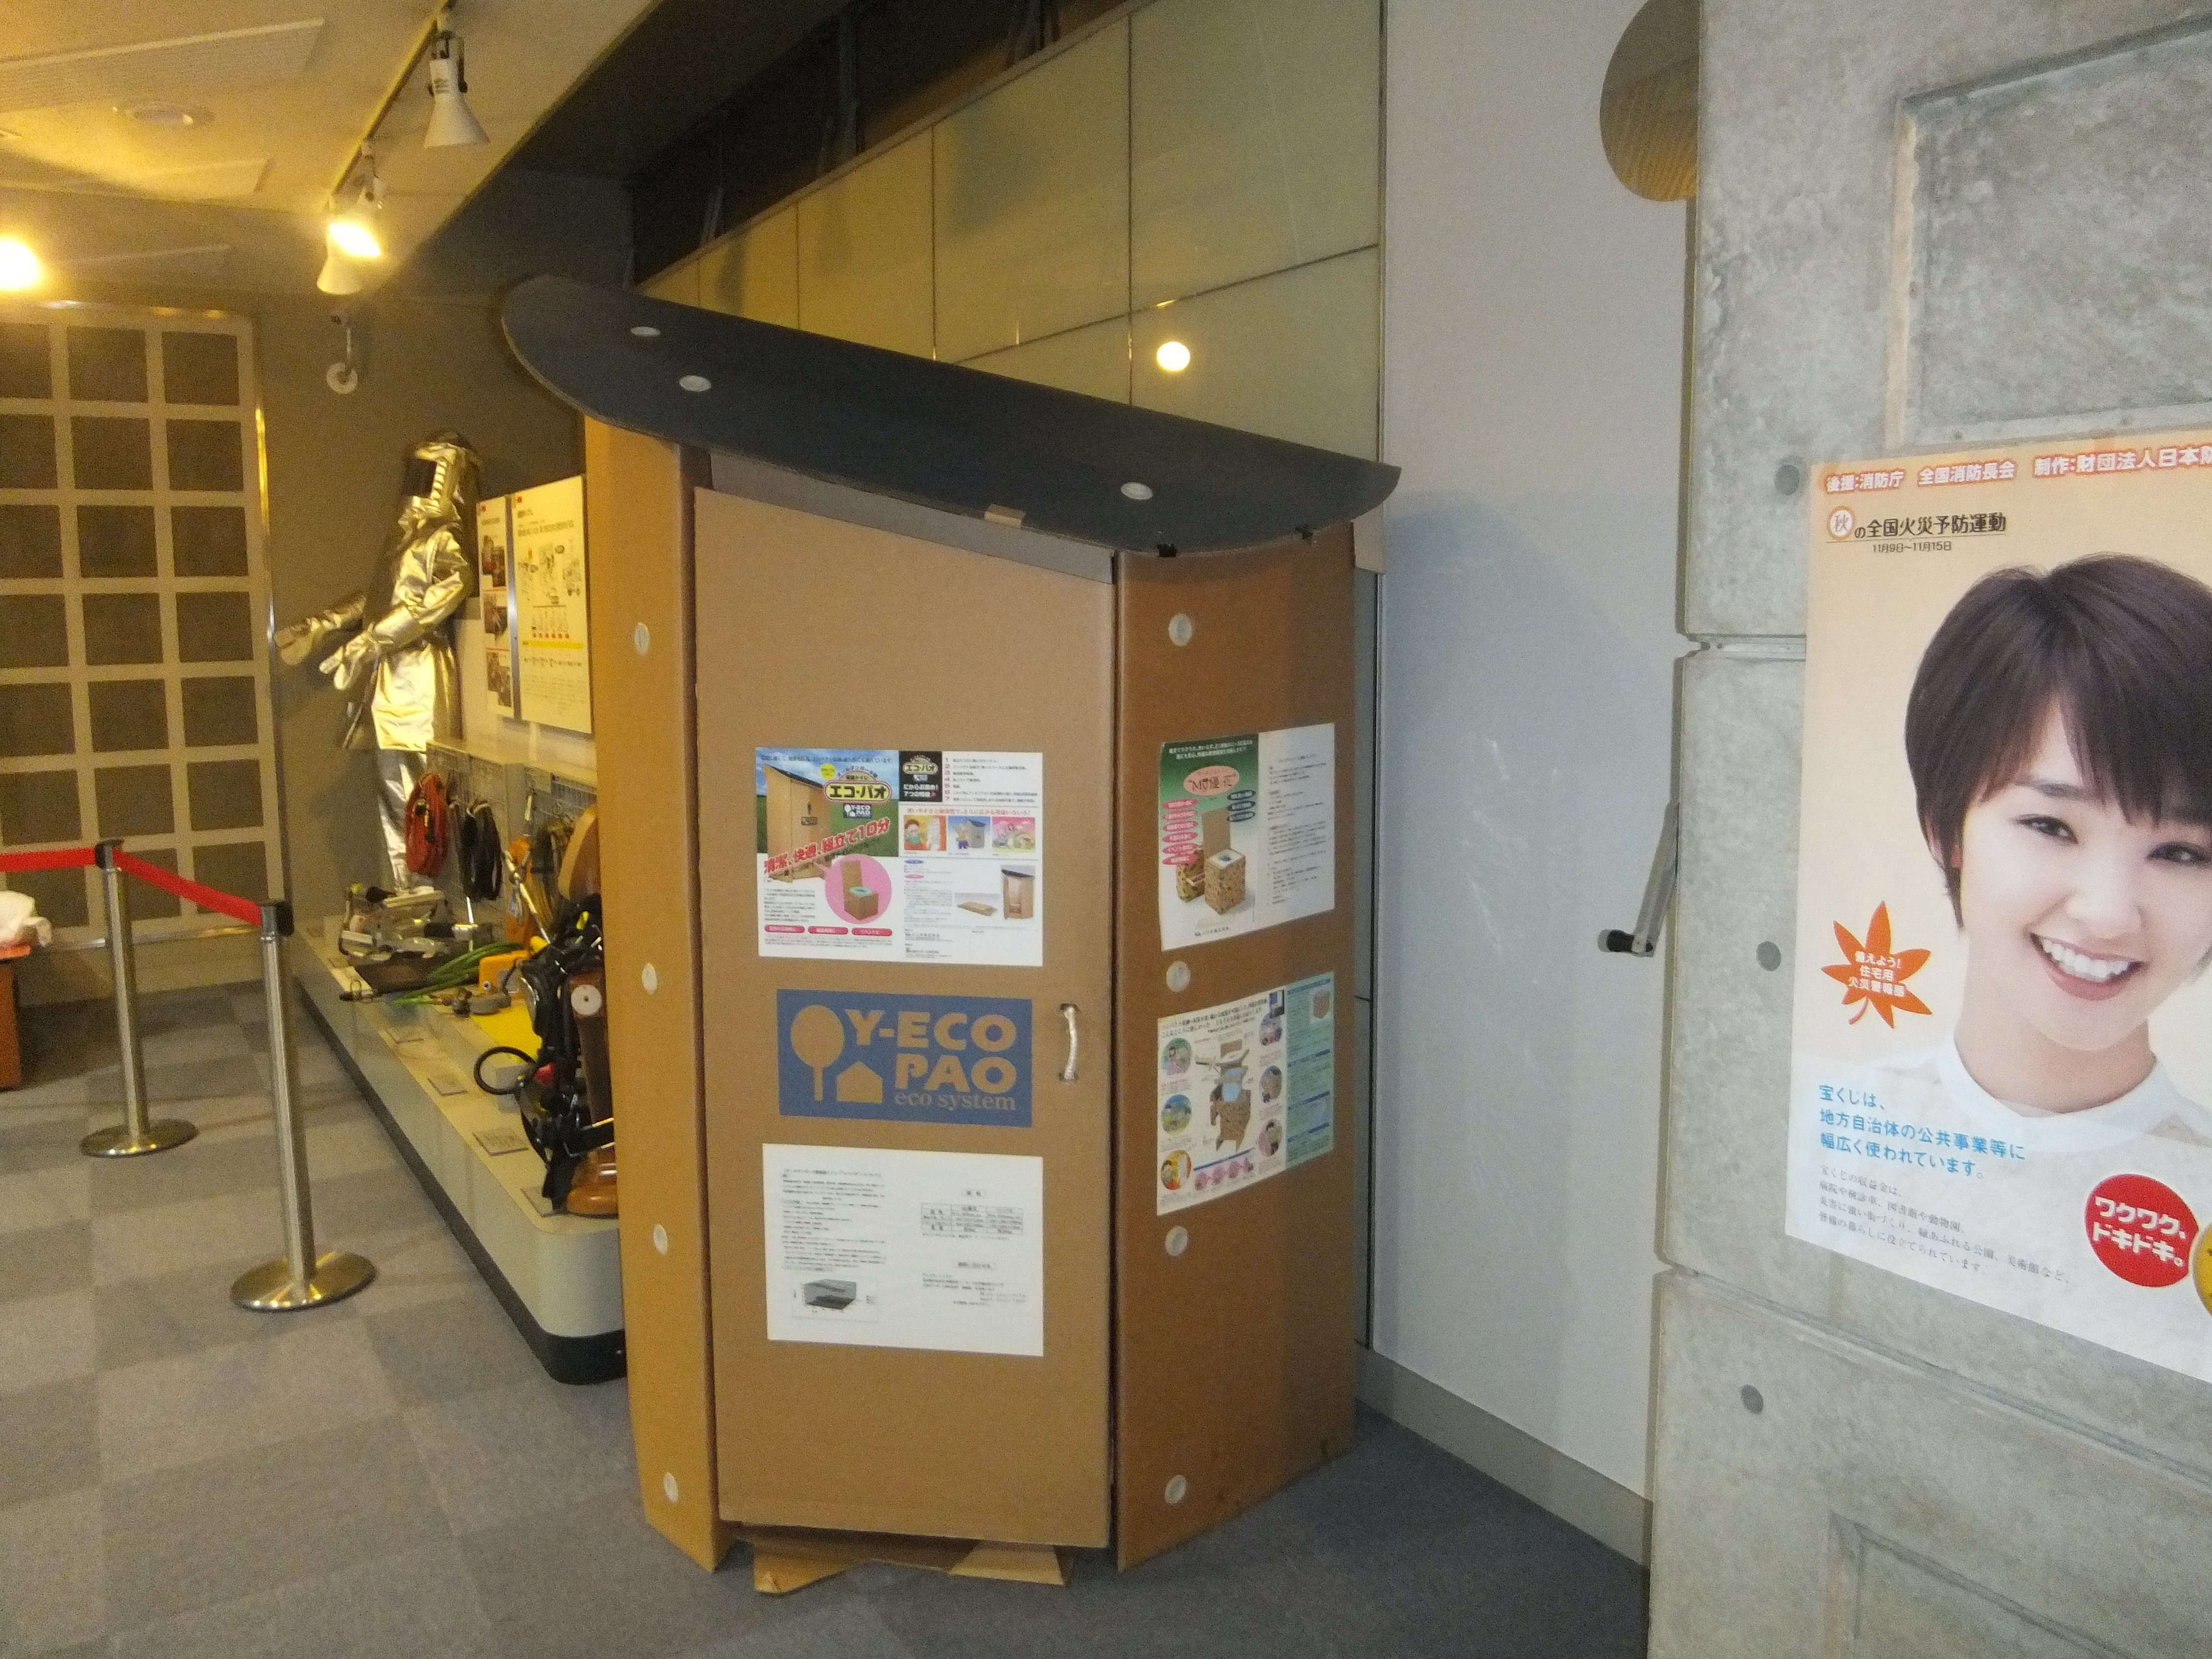 A toilet made out of cardboard